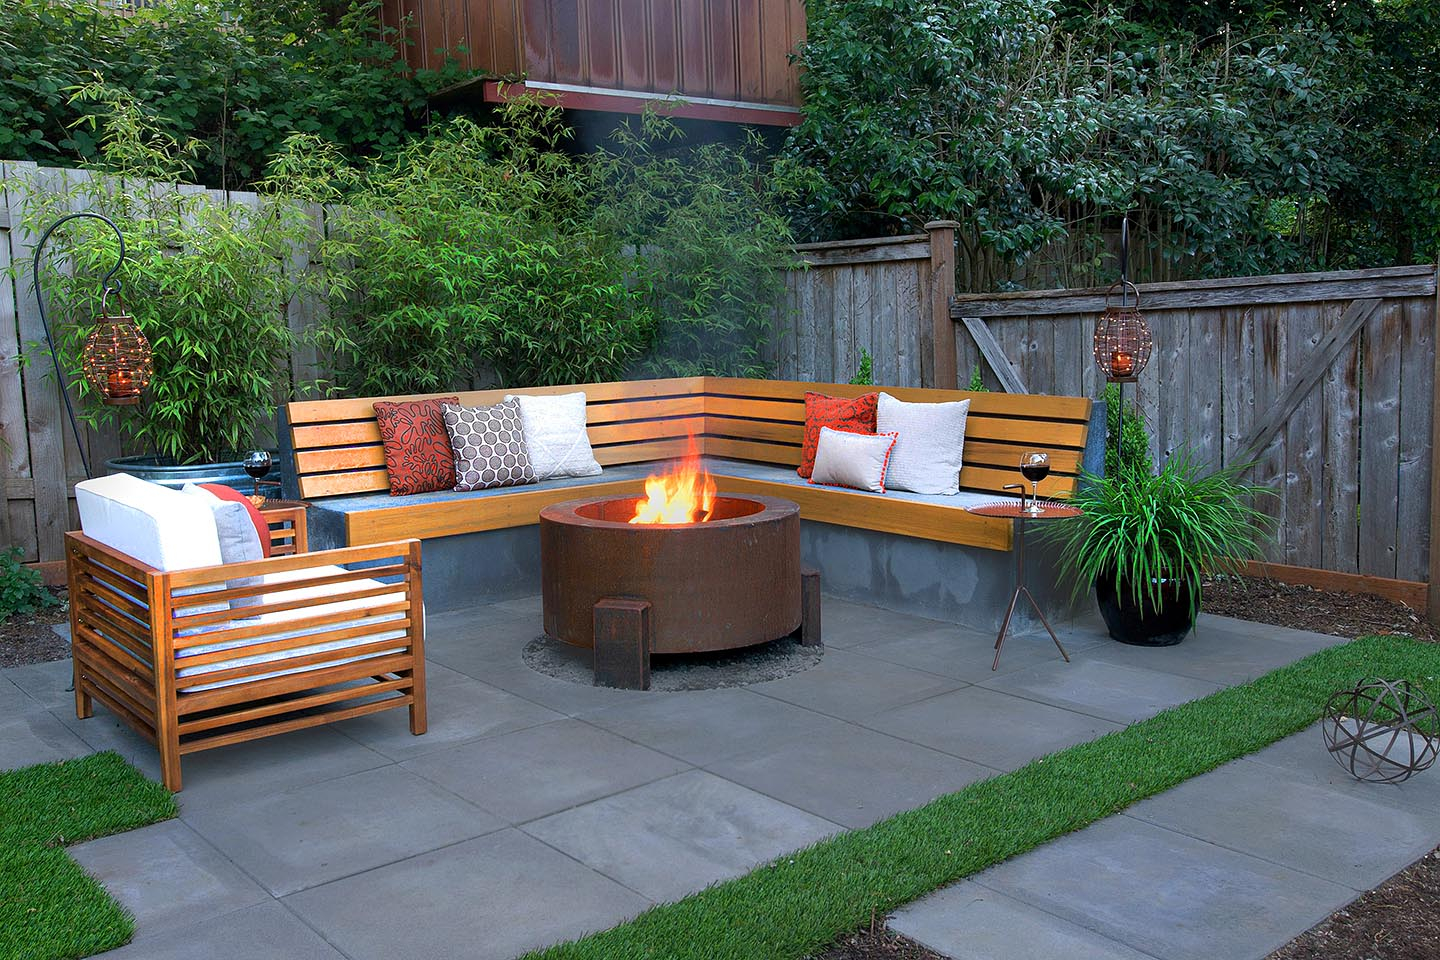 Landscaping A Sloped Backyard Paradise Restored Landscaping with 15 Genius Concepts of How to Makeover Backyard Paradise Landscaping